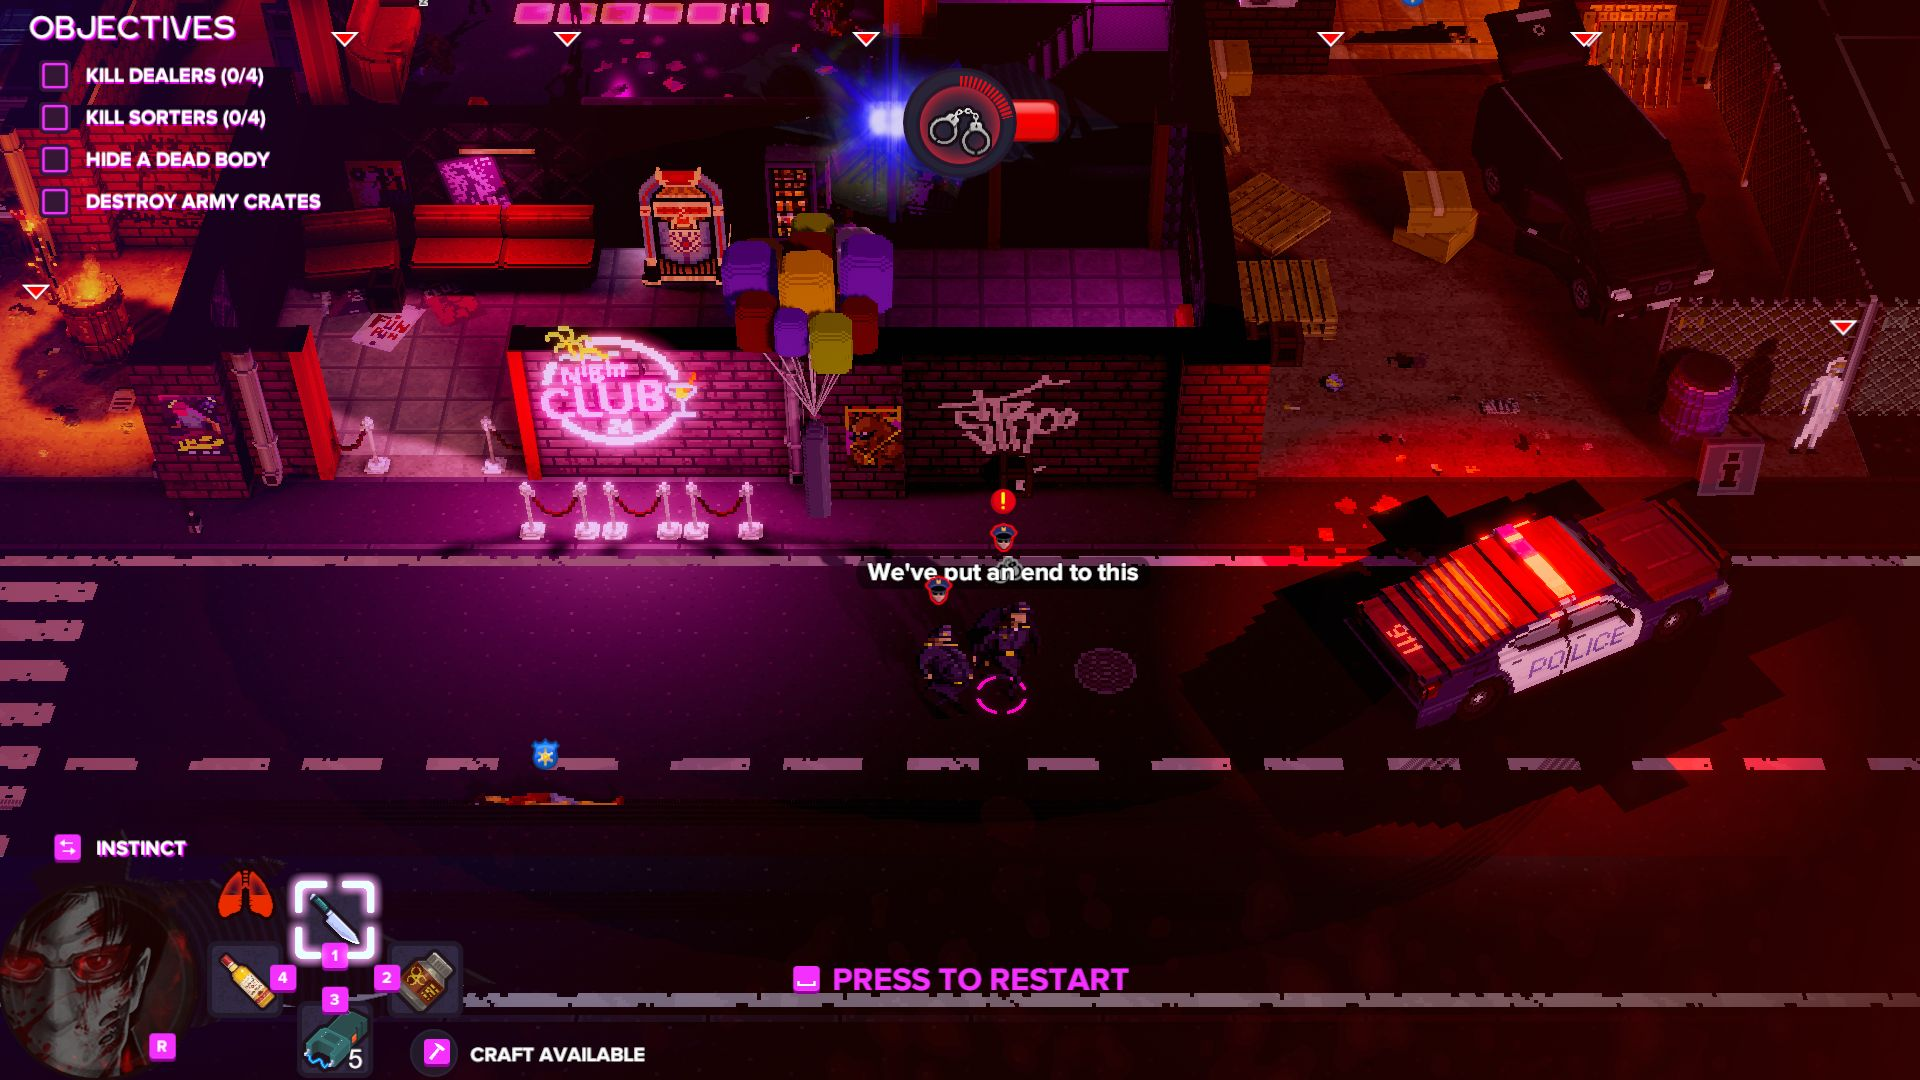 Action, Gore, indie, Nintendo Switch Review, Party Hard, Party Hard 2, Party Hard 2 Review, Pinokl Games, stealth, strategy, Switch Review, tinyBuild Games, Violent